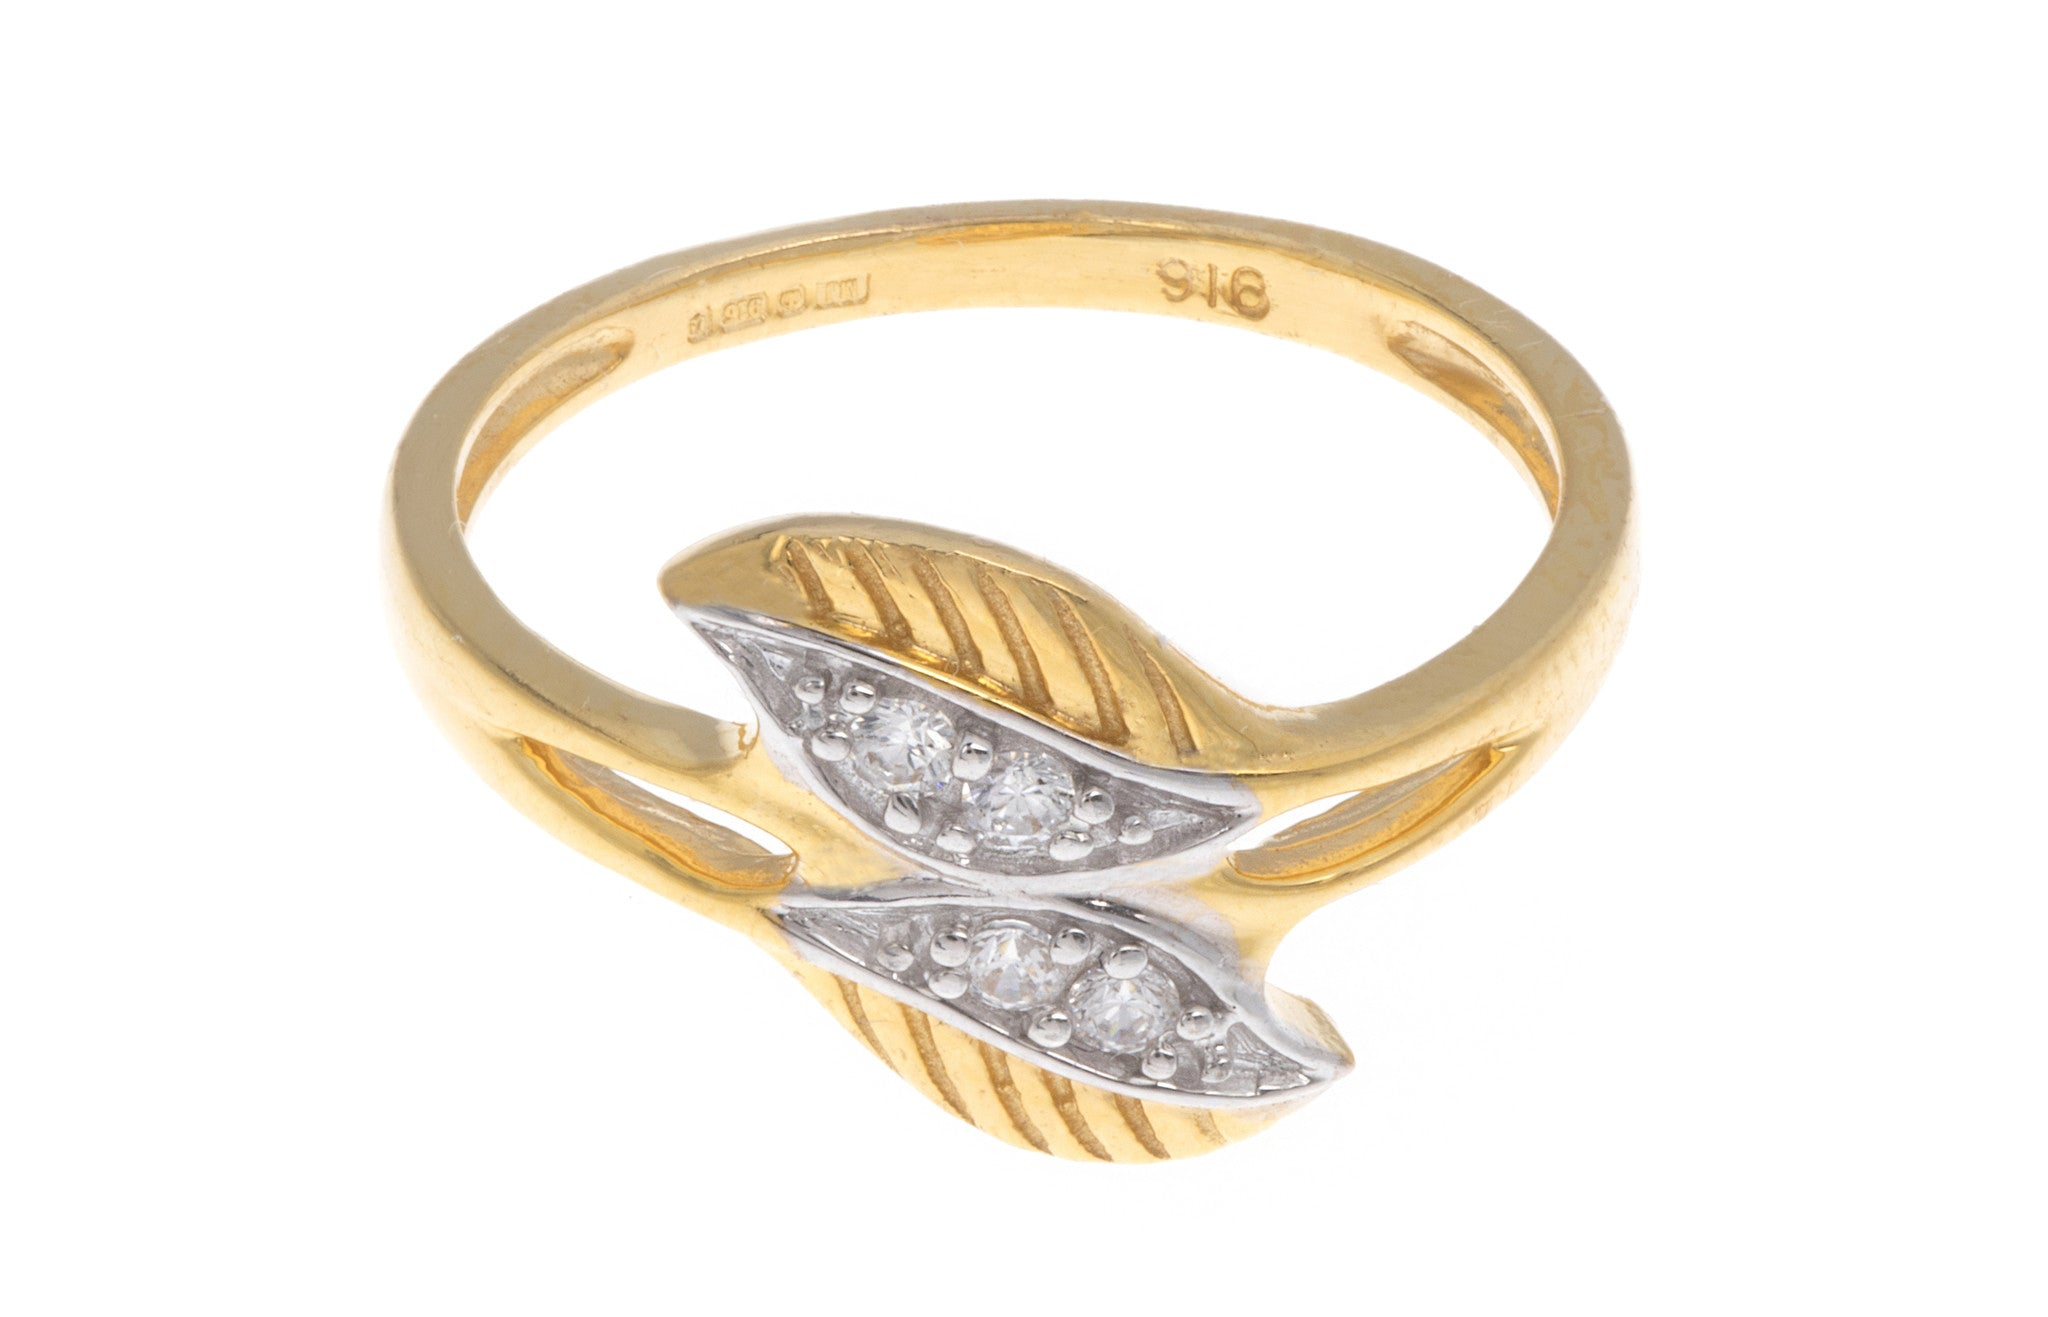 22ct Yellow Gold Double Leaf Dress Ring set with Cubic Zirconias, Minar Jewellers - 3